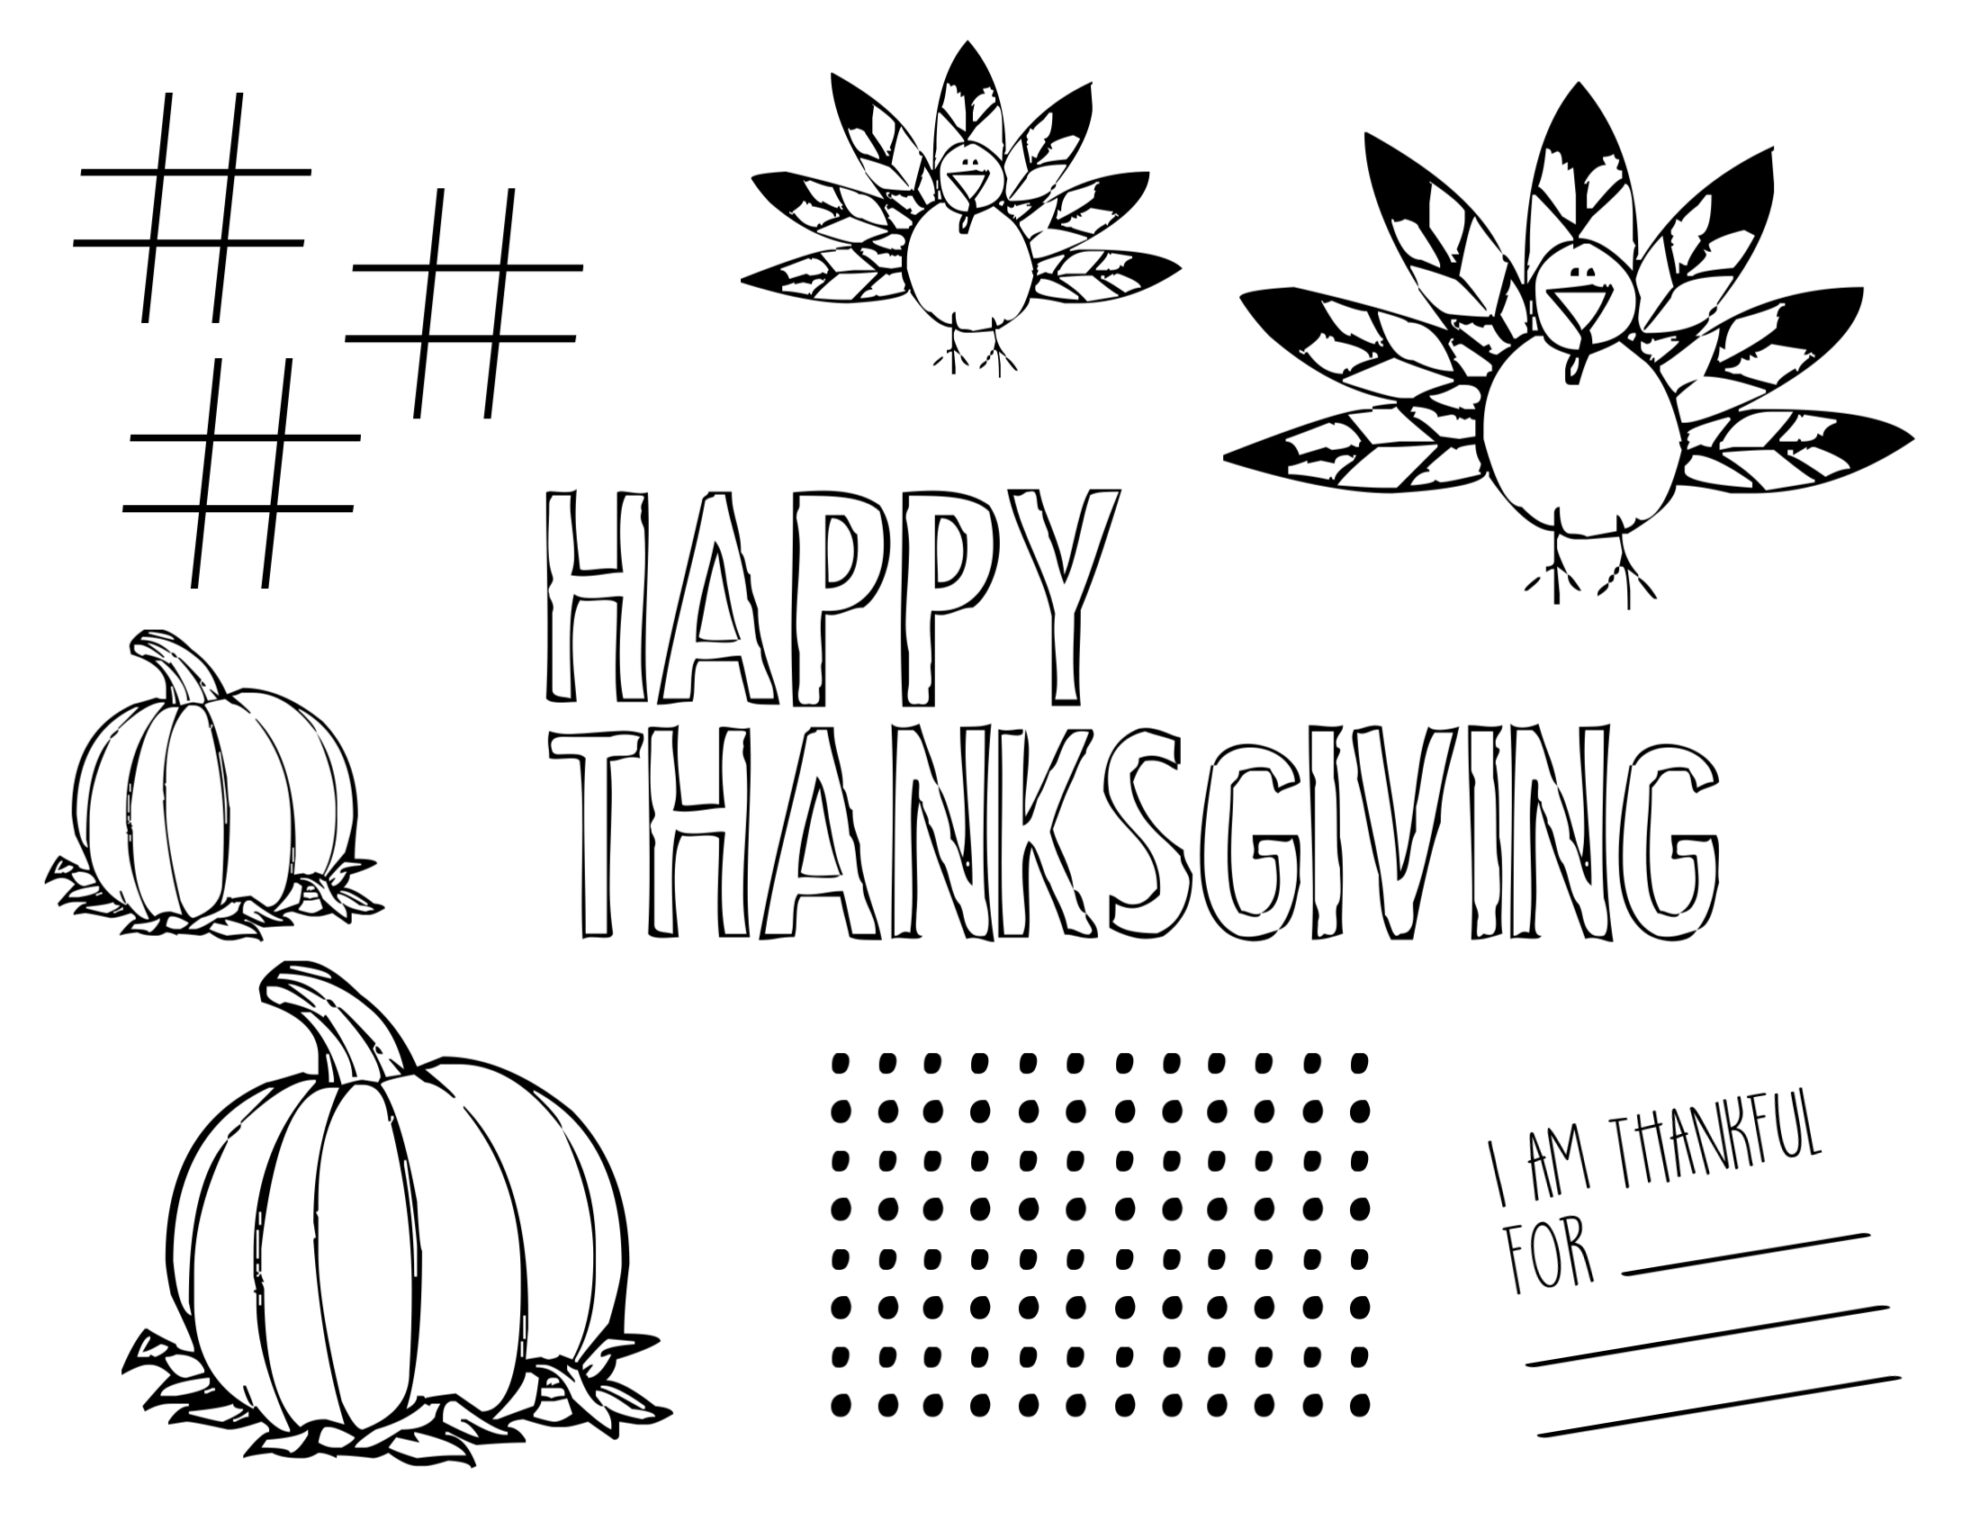 photo about Thanksgiving Placemats Printable called No cost Printable Thanksgiving Placemat - Paper Path Design and style